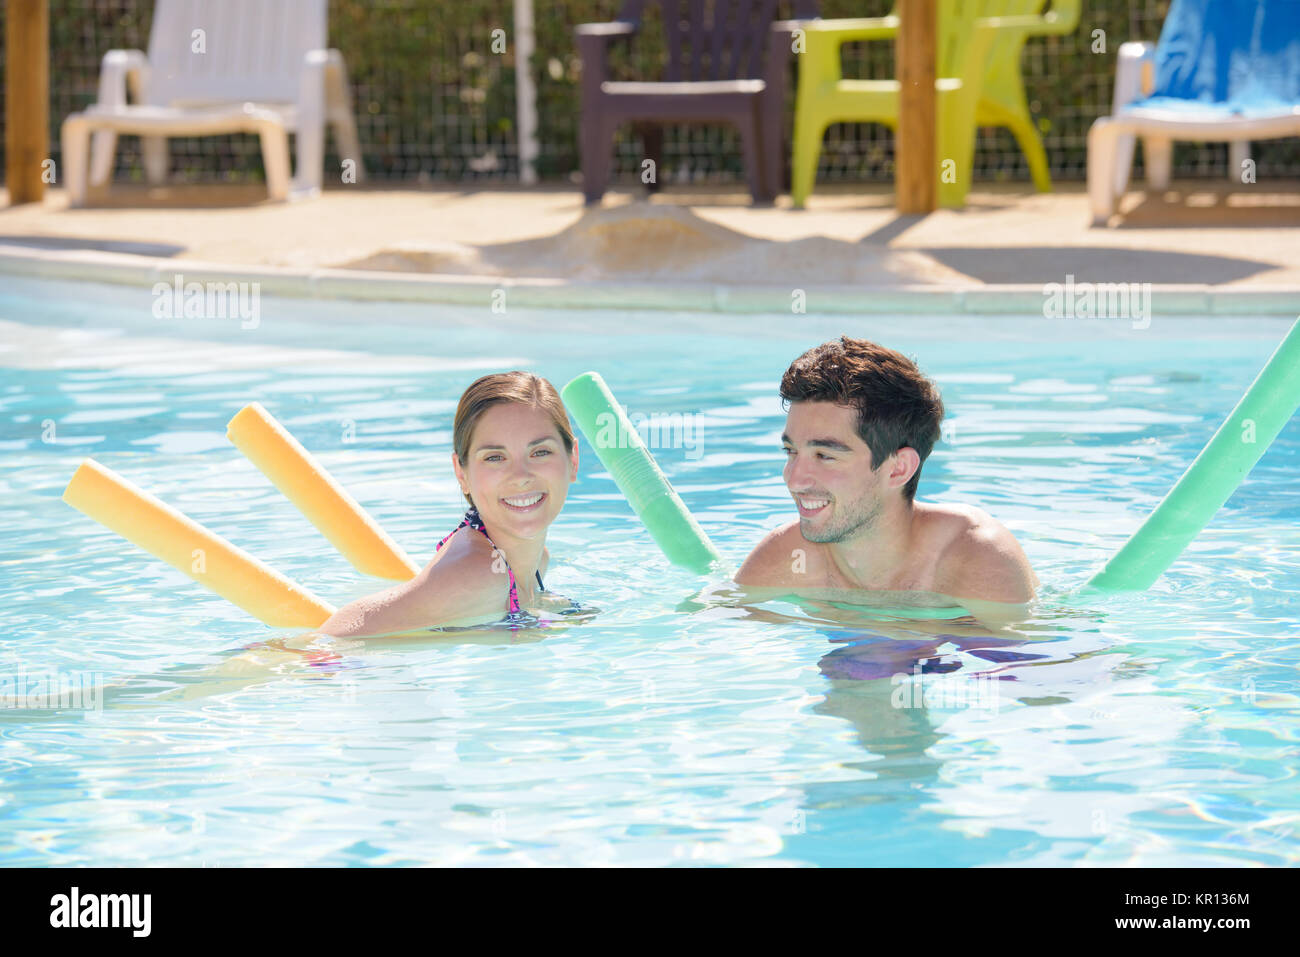 swimming time - Stock Image